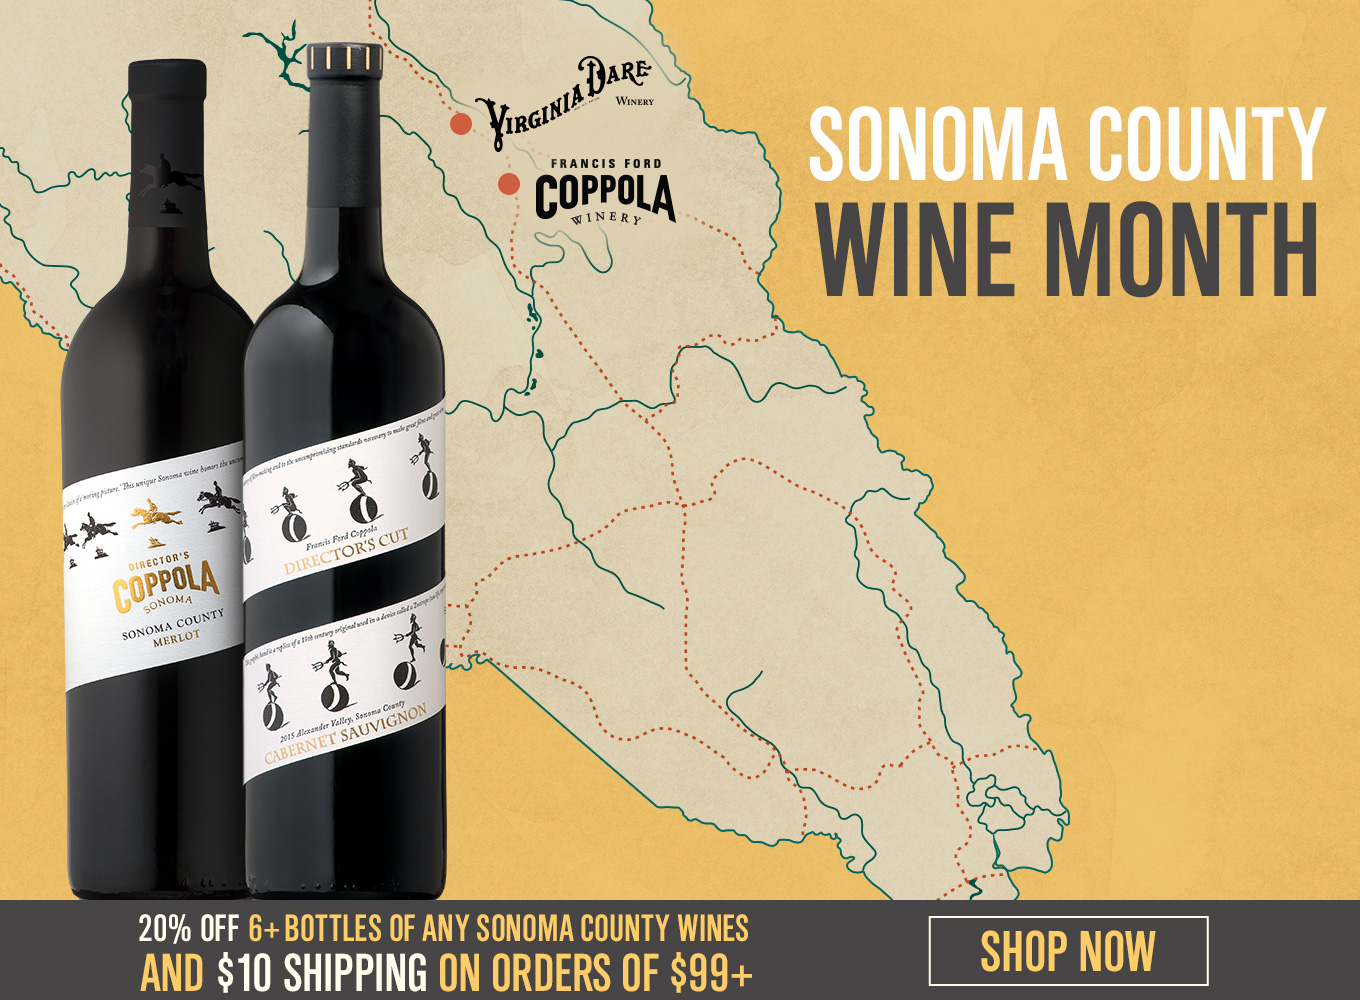 Sonoma County Wine Month, 20% off 6+ Bottles of any Sonoma County Wines and $10 Shipping on Orders of $99+